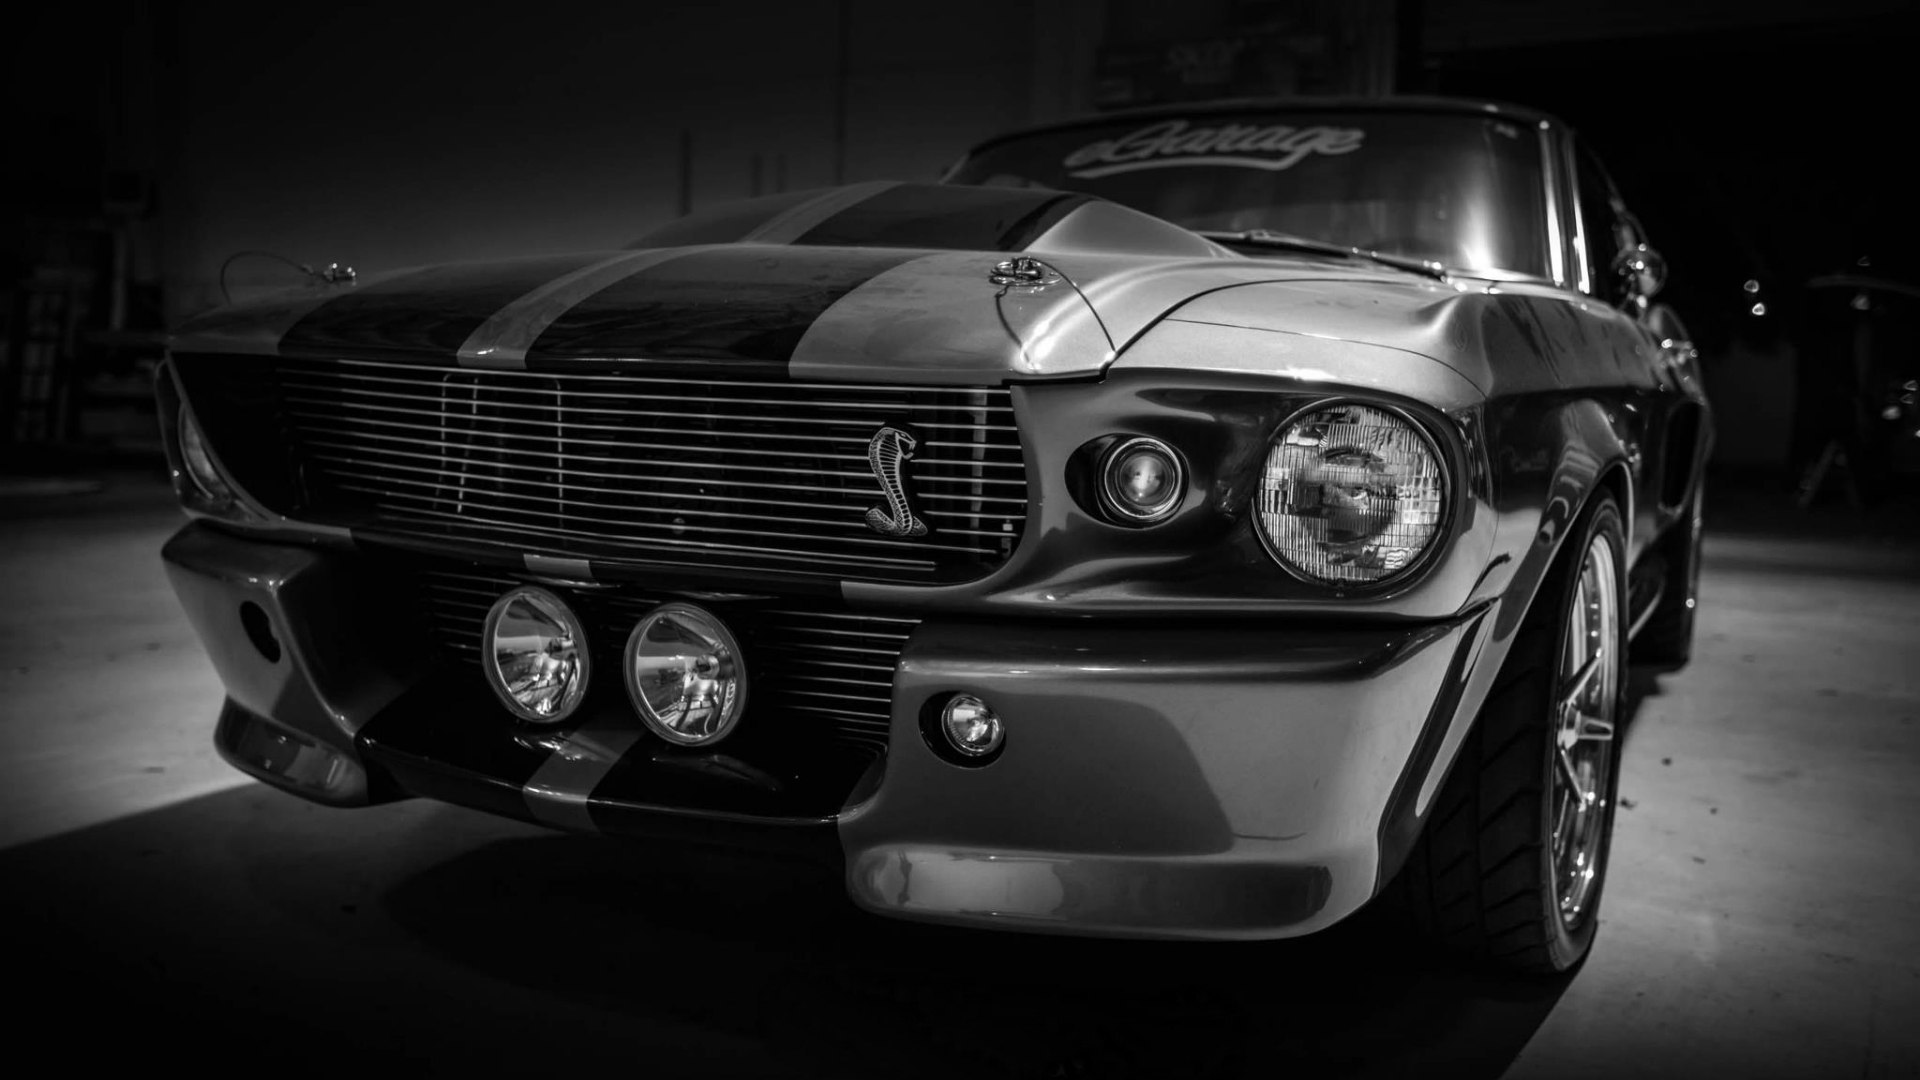 Ford Mustang Shelby GT500 poster